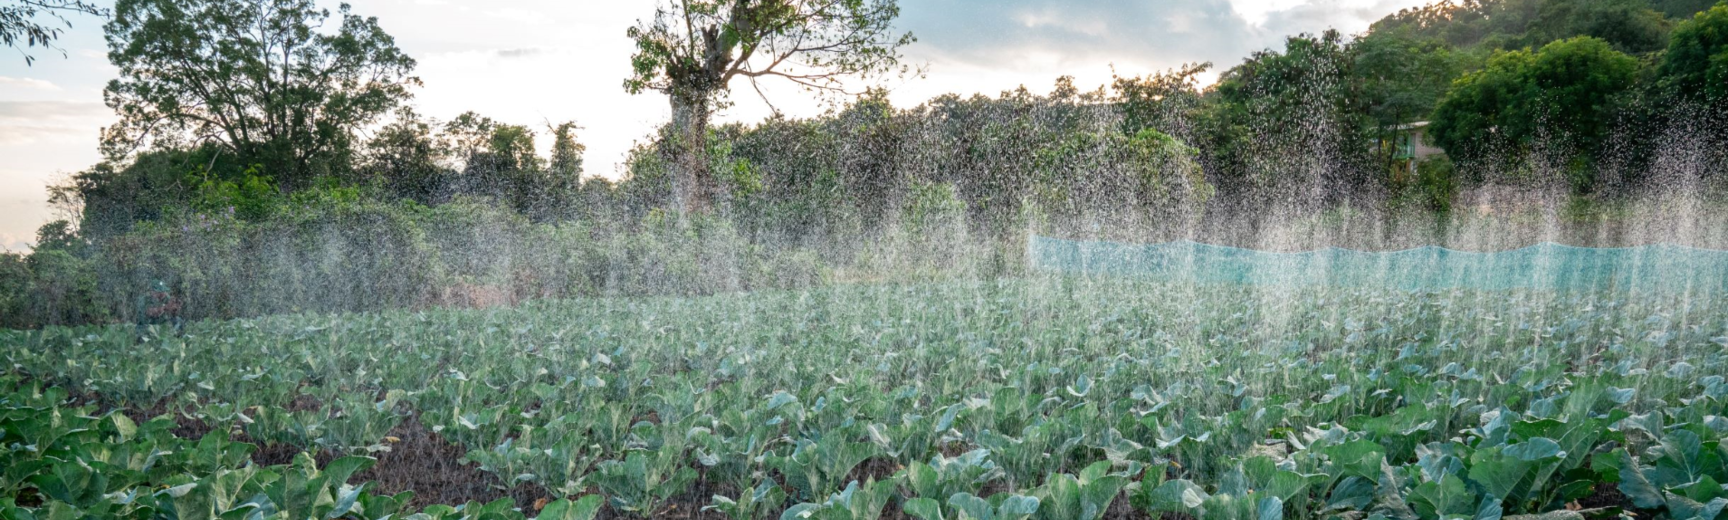 proximity micro irrigation in action